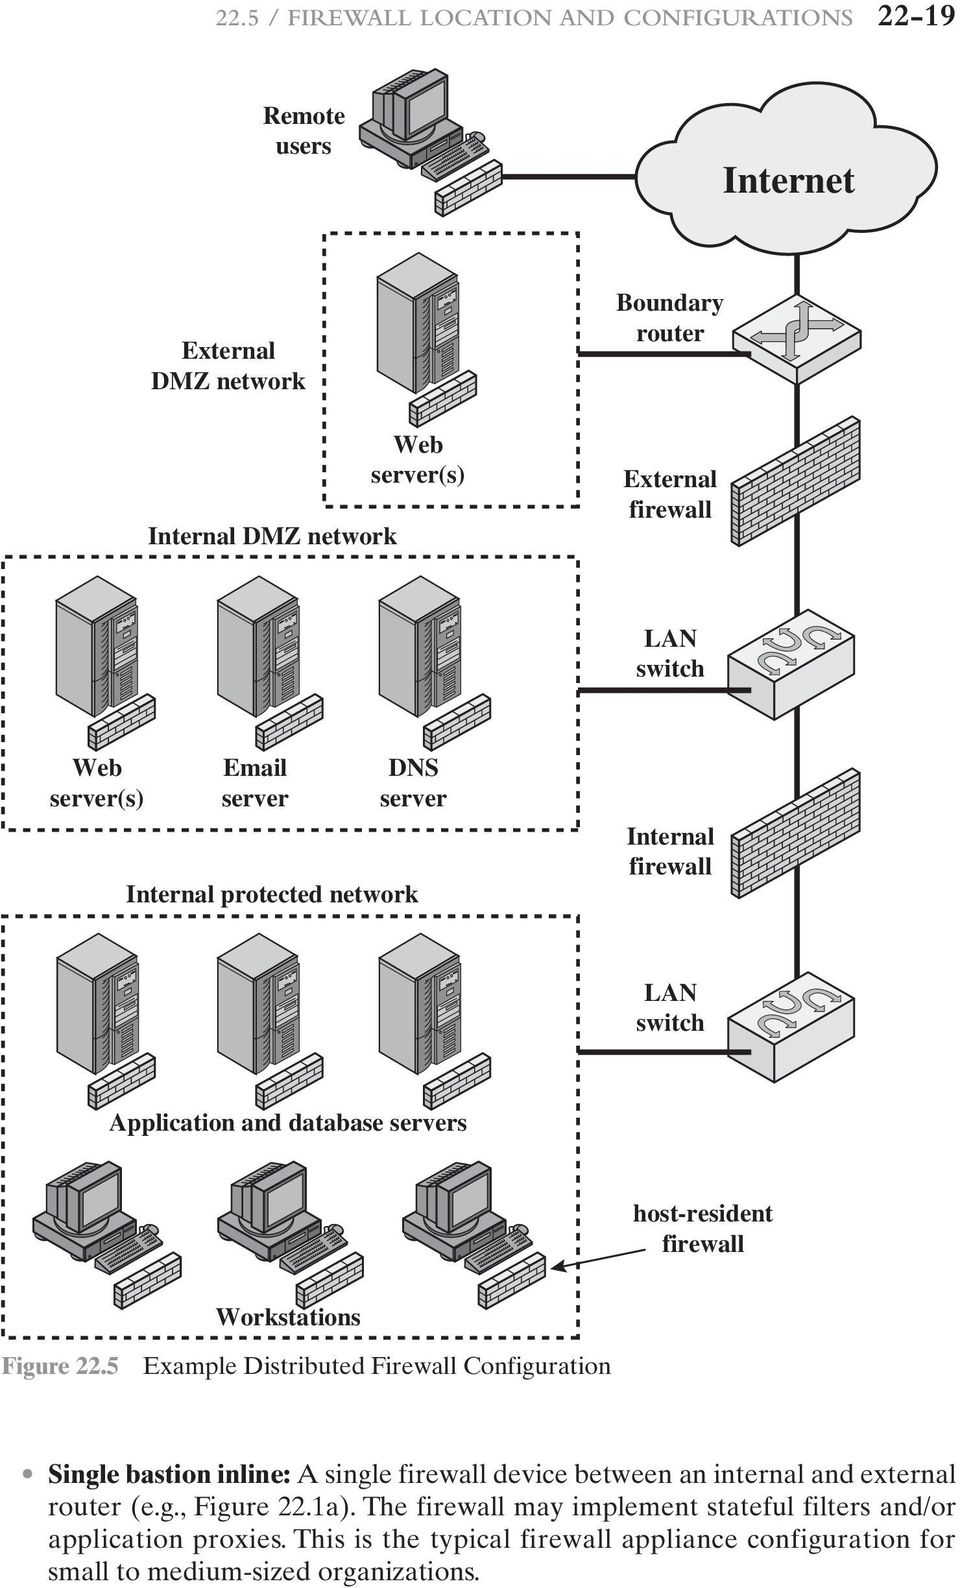 Workstations Figure 22.5 Example Distributed Firewall Configuration Single bastion inline: A single firewall device between an internal and external router (e.g., Figure 22.